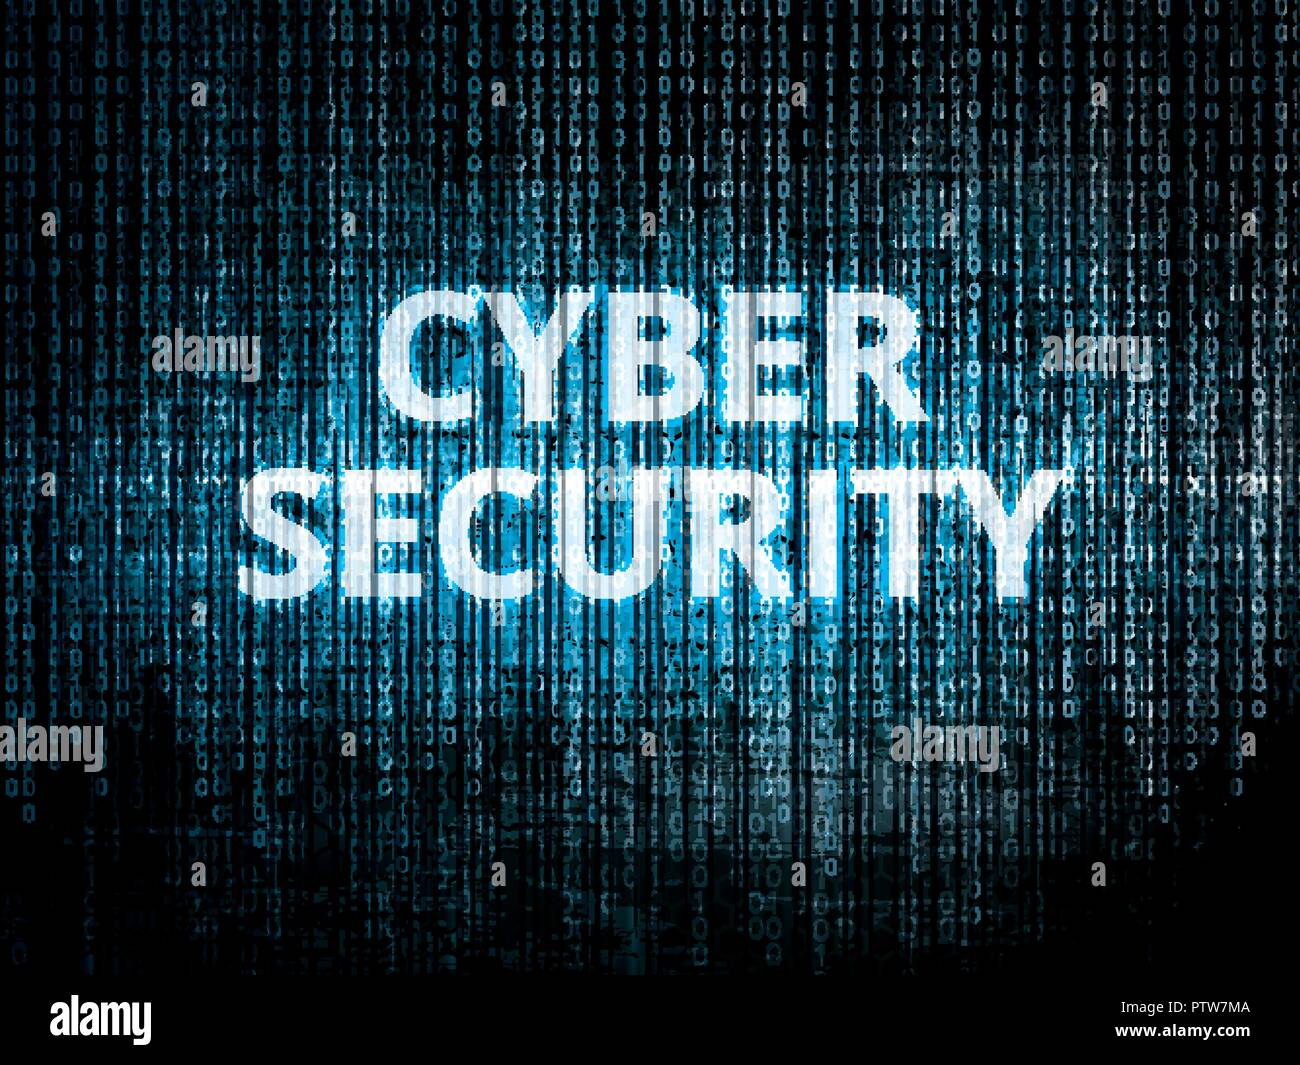 Binary code in background, encrypted data protected by security system and text Ciber security - Stock Image